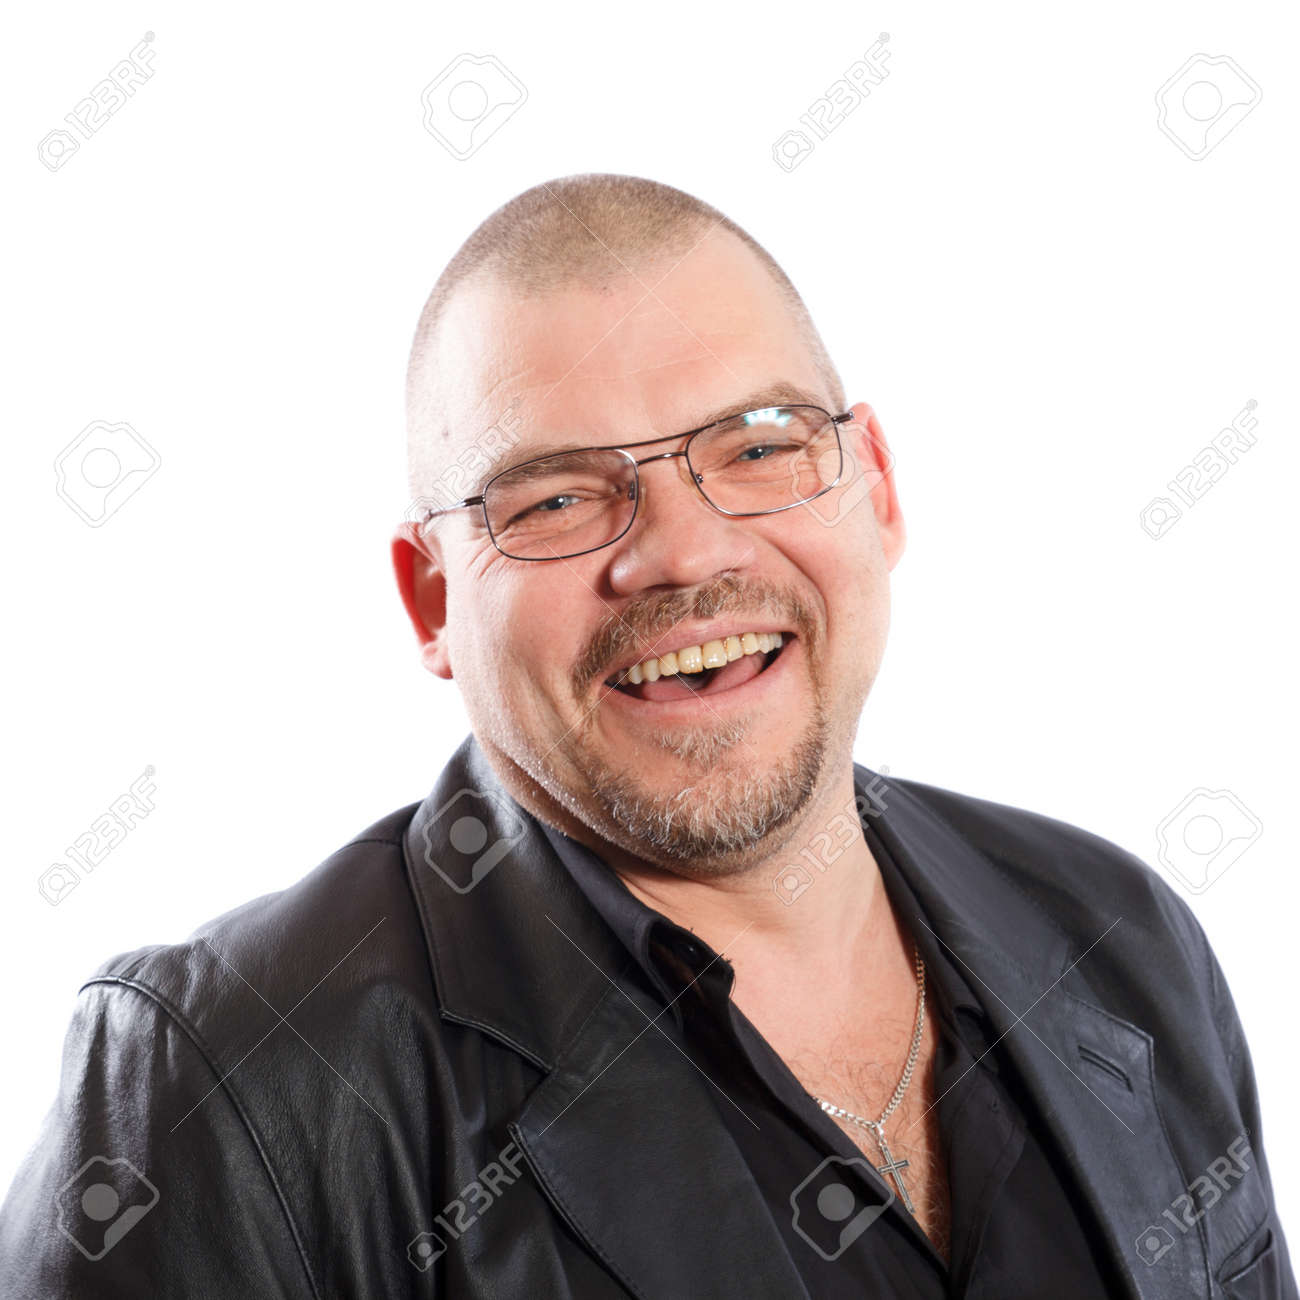 smiling man with glasses without hair on a white background Stock Photo - 18766715